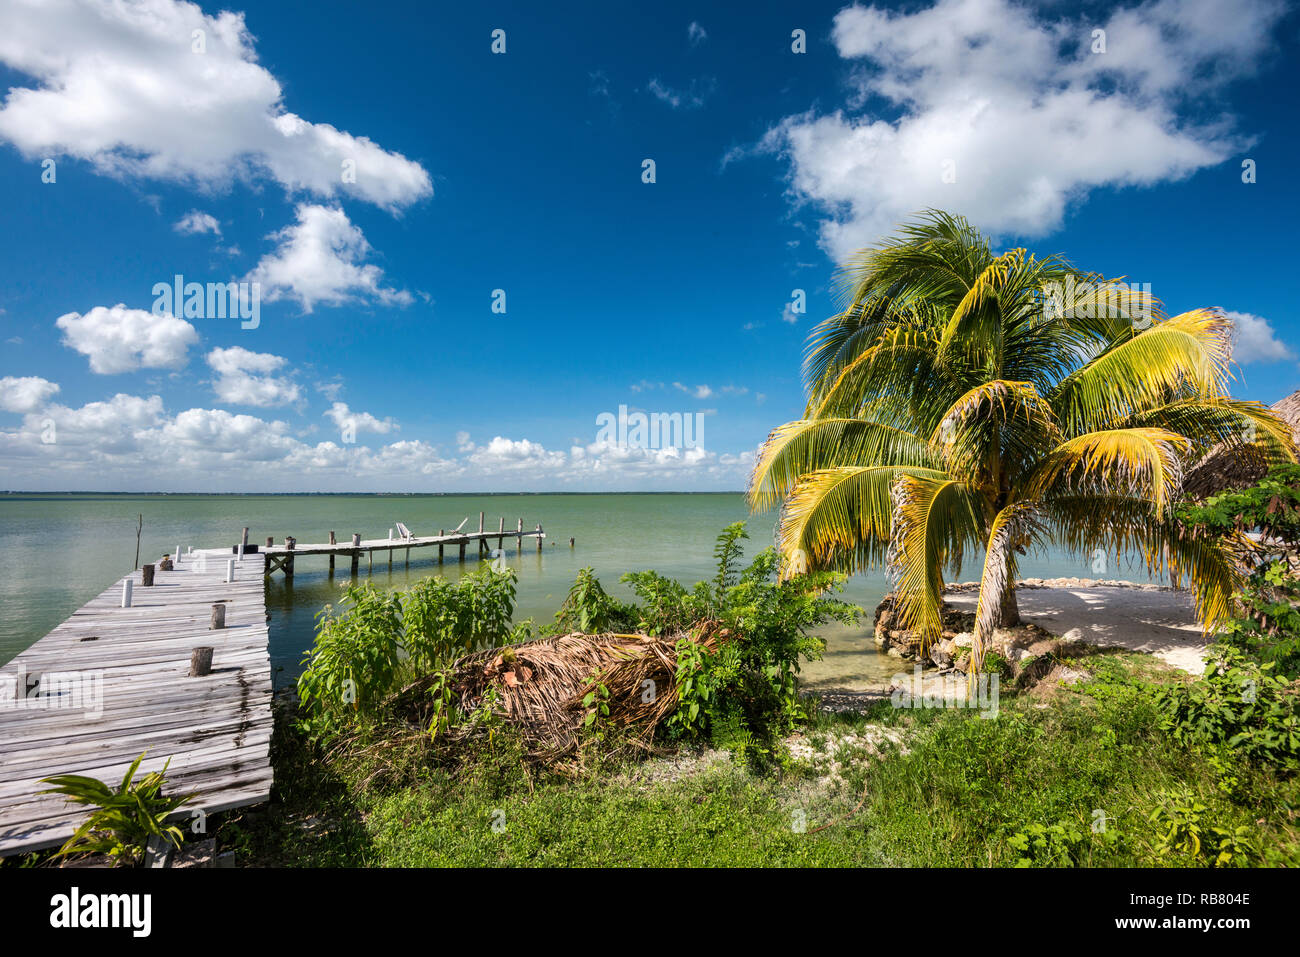 Il Boardwalk, Palm tree a Corozal Bay seashore Mar dei Caraibi costa, Cerros Beach Resort, Cerros Penisola, Corozal District, BelizeBoardwalk, Palm tree Foto Stock